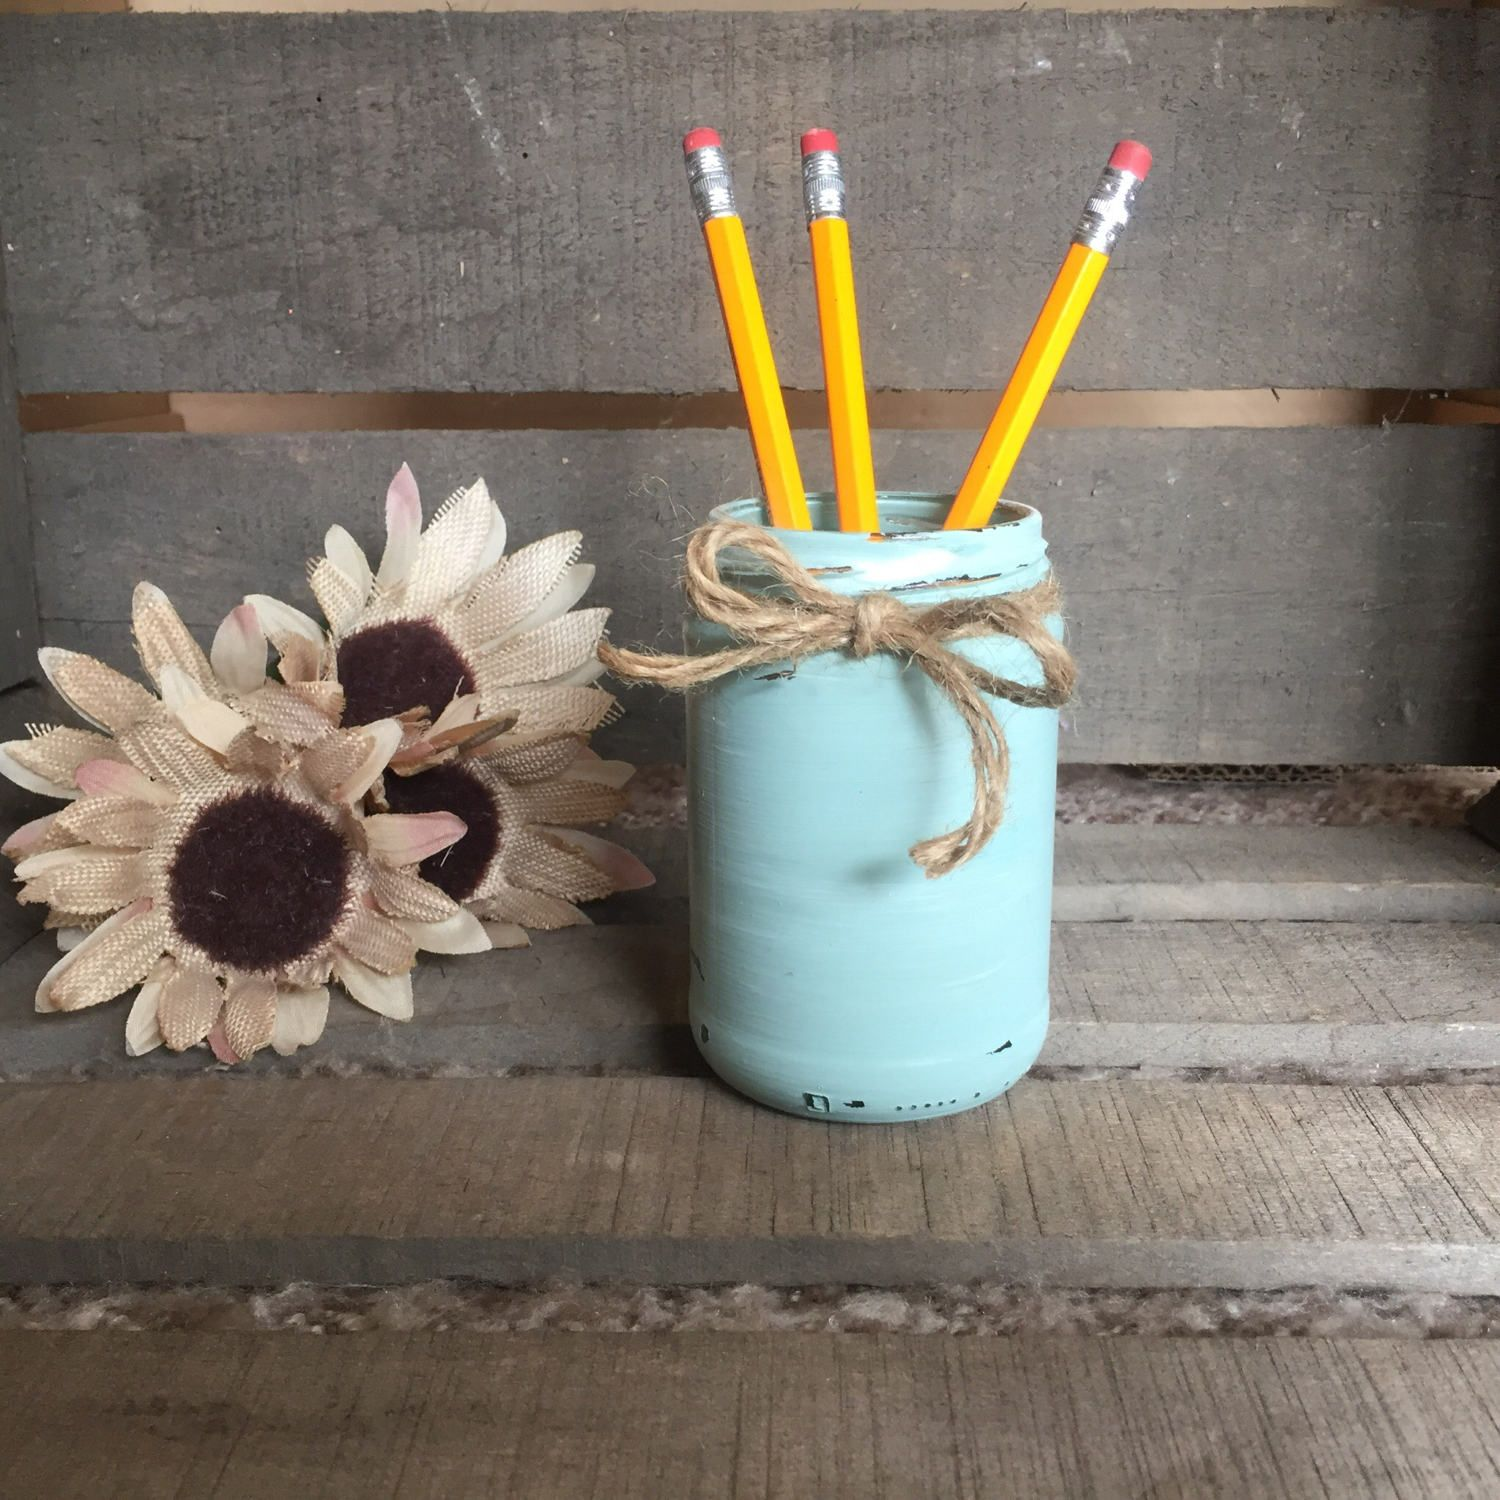 Repurposed Items This Cute Rustic Hand Painted Jar Is Made From Repurposed Items